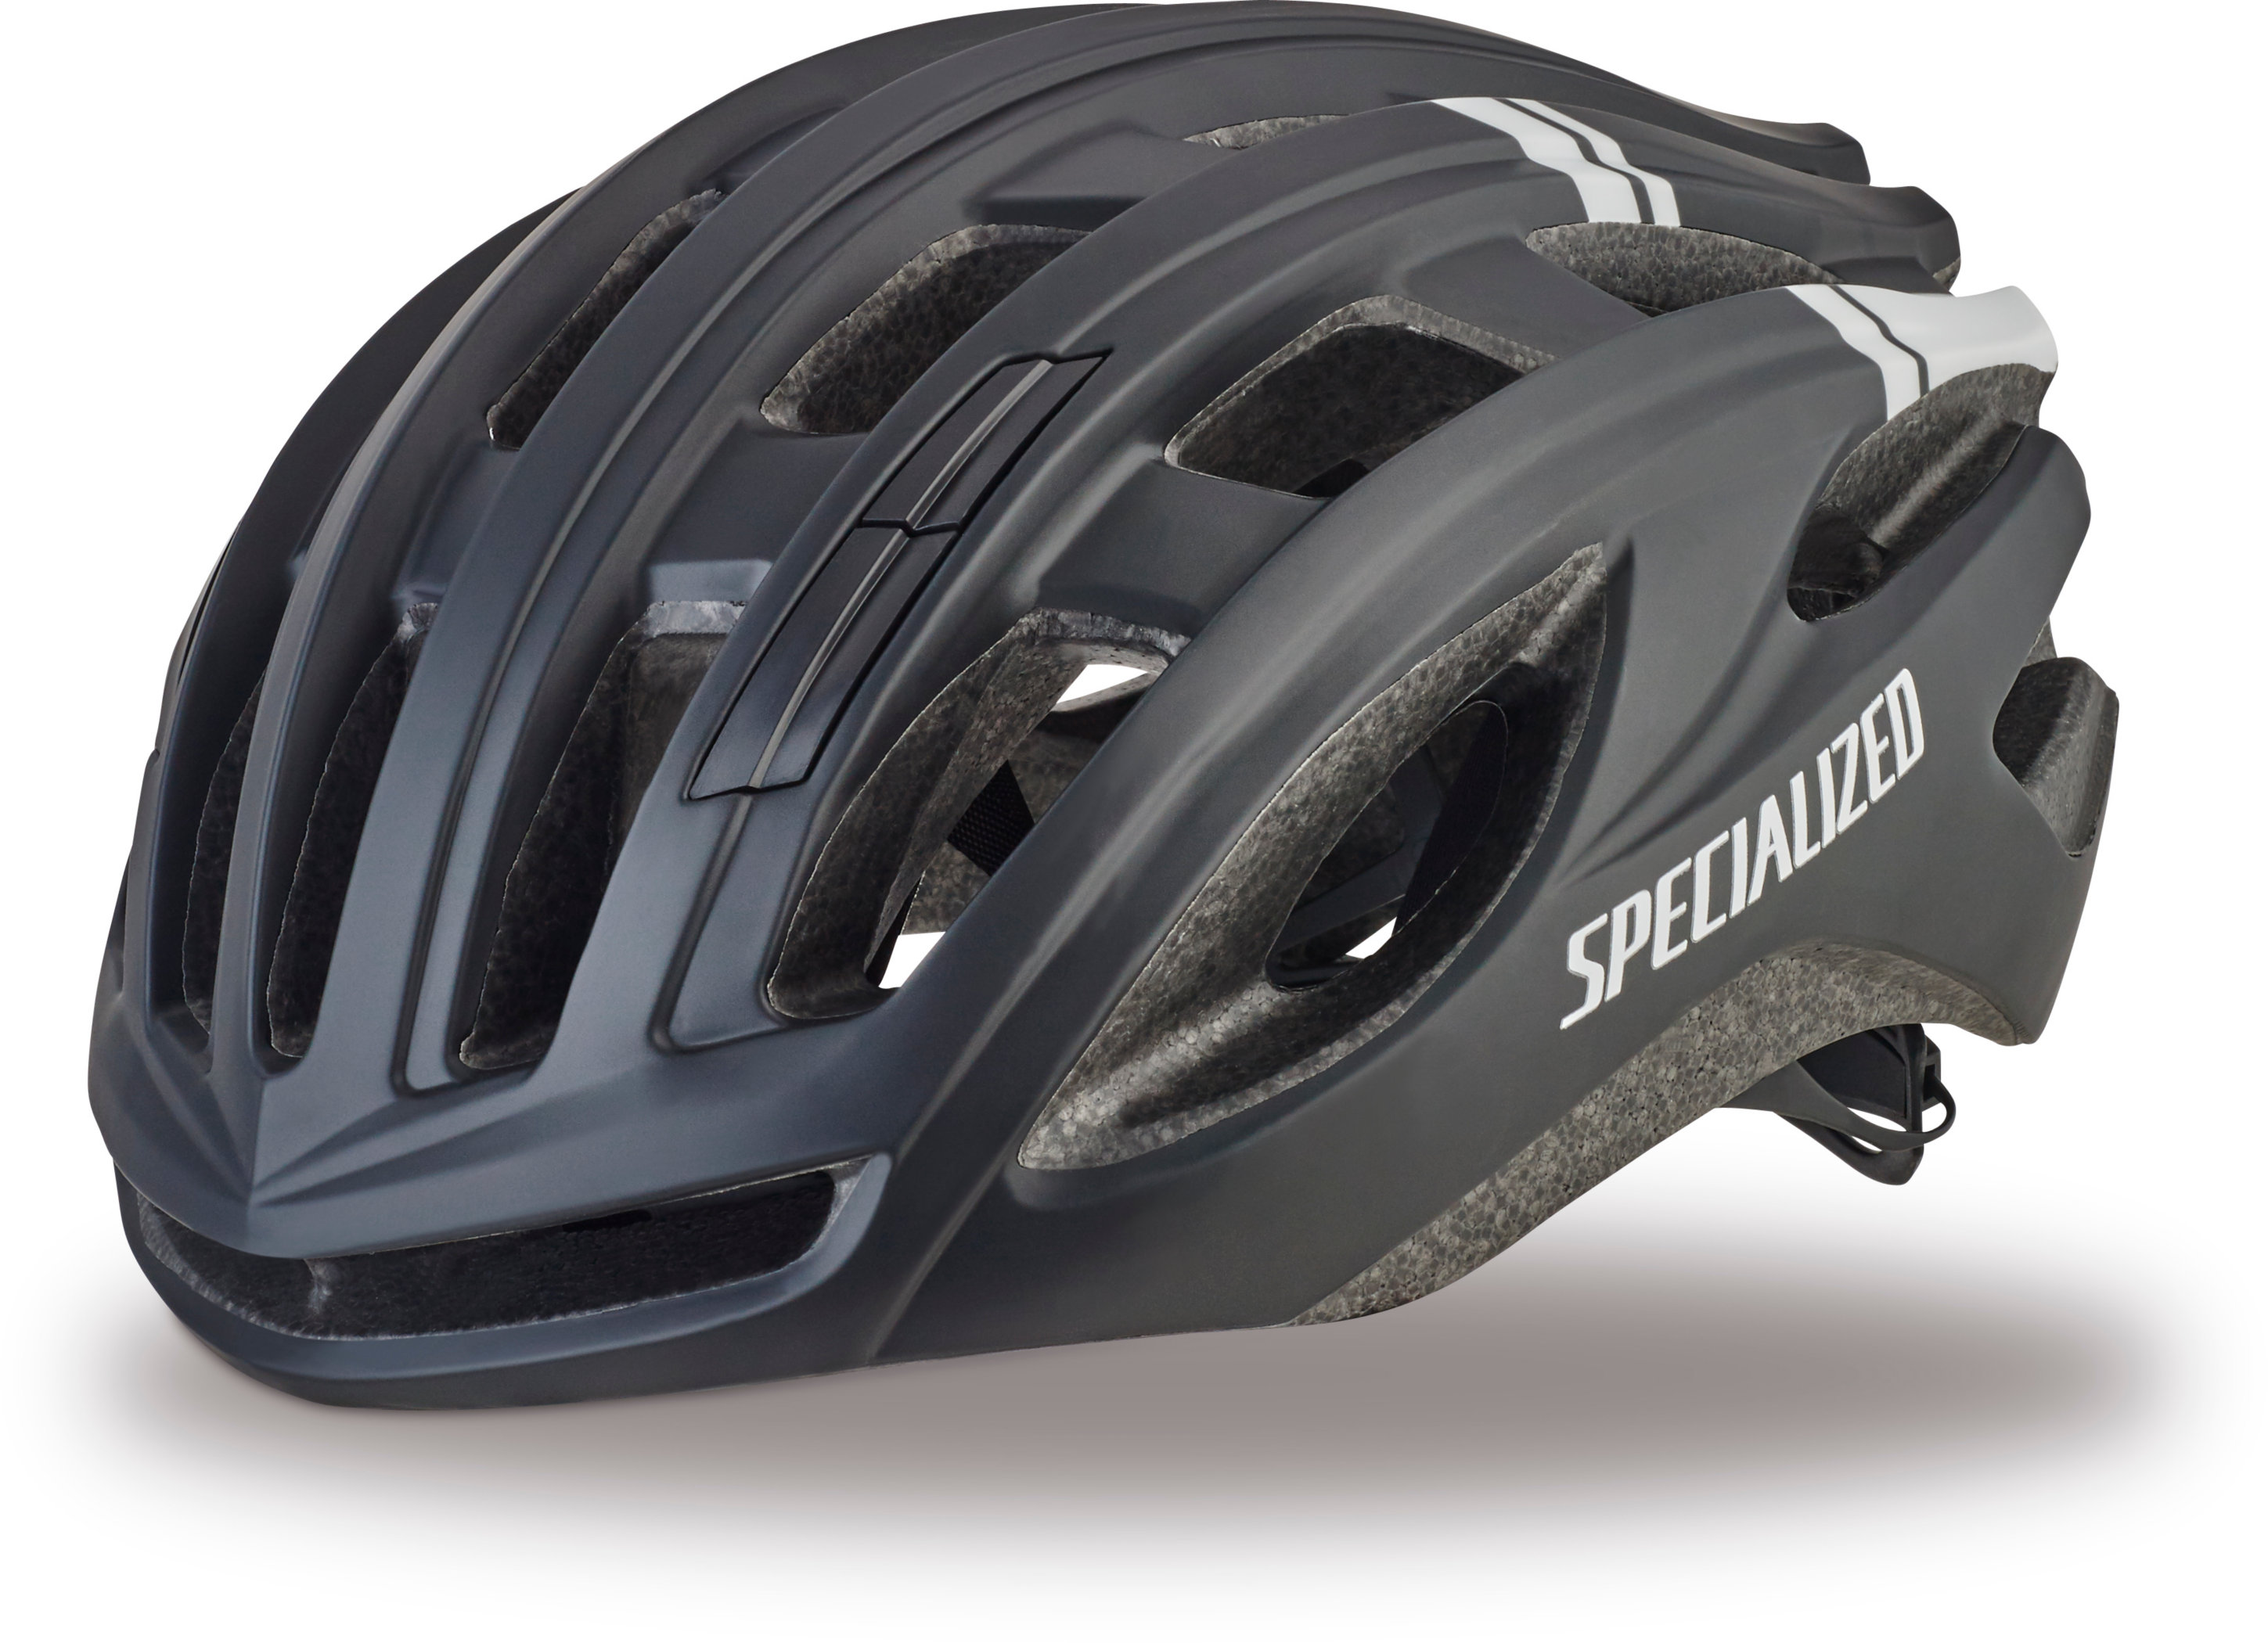 SPECIALIZED PROPERO 3 HLMT CE BLK M - Bike Zone